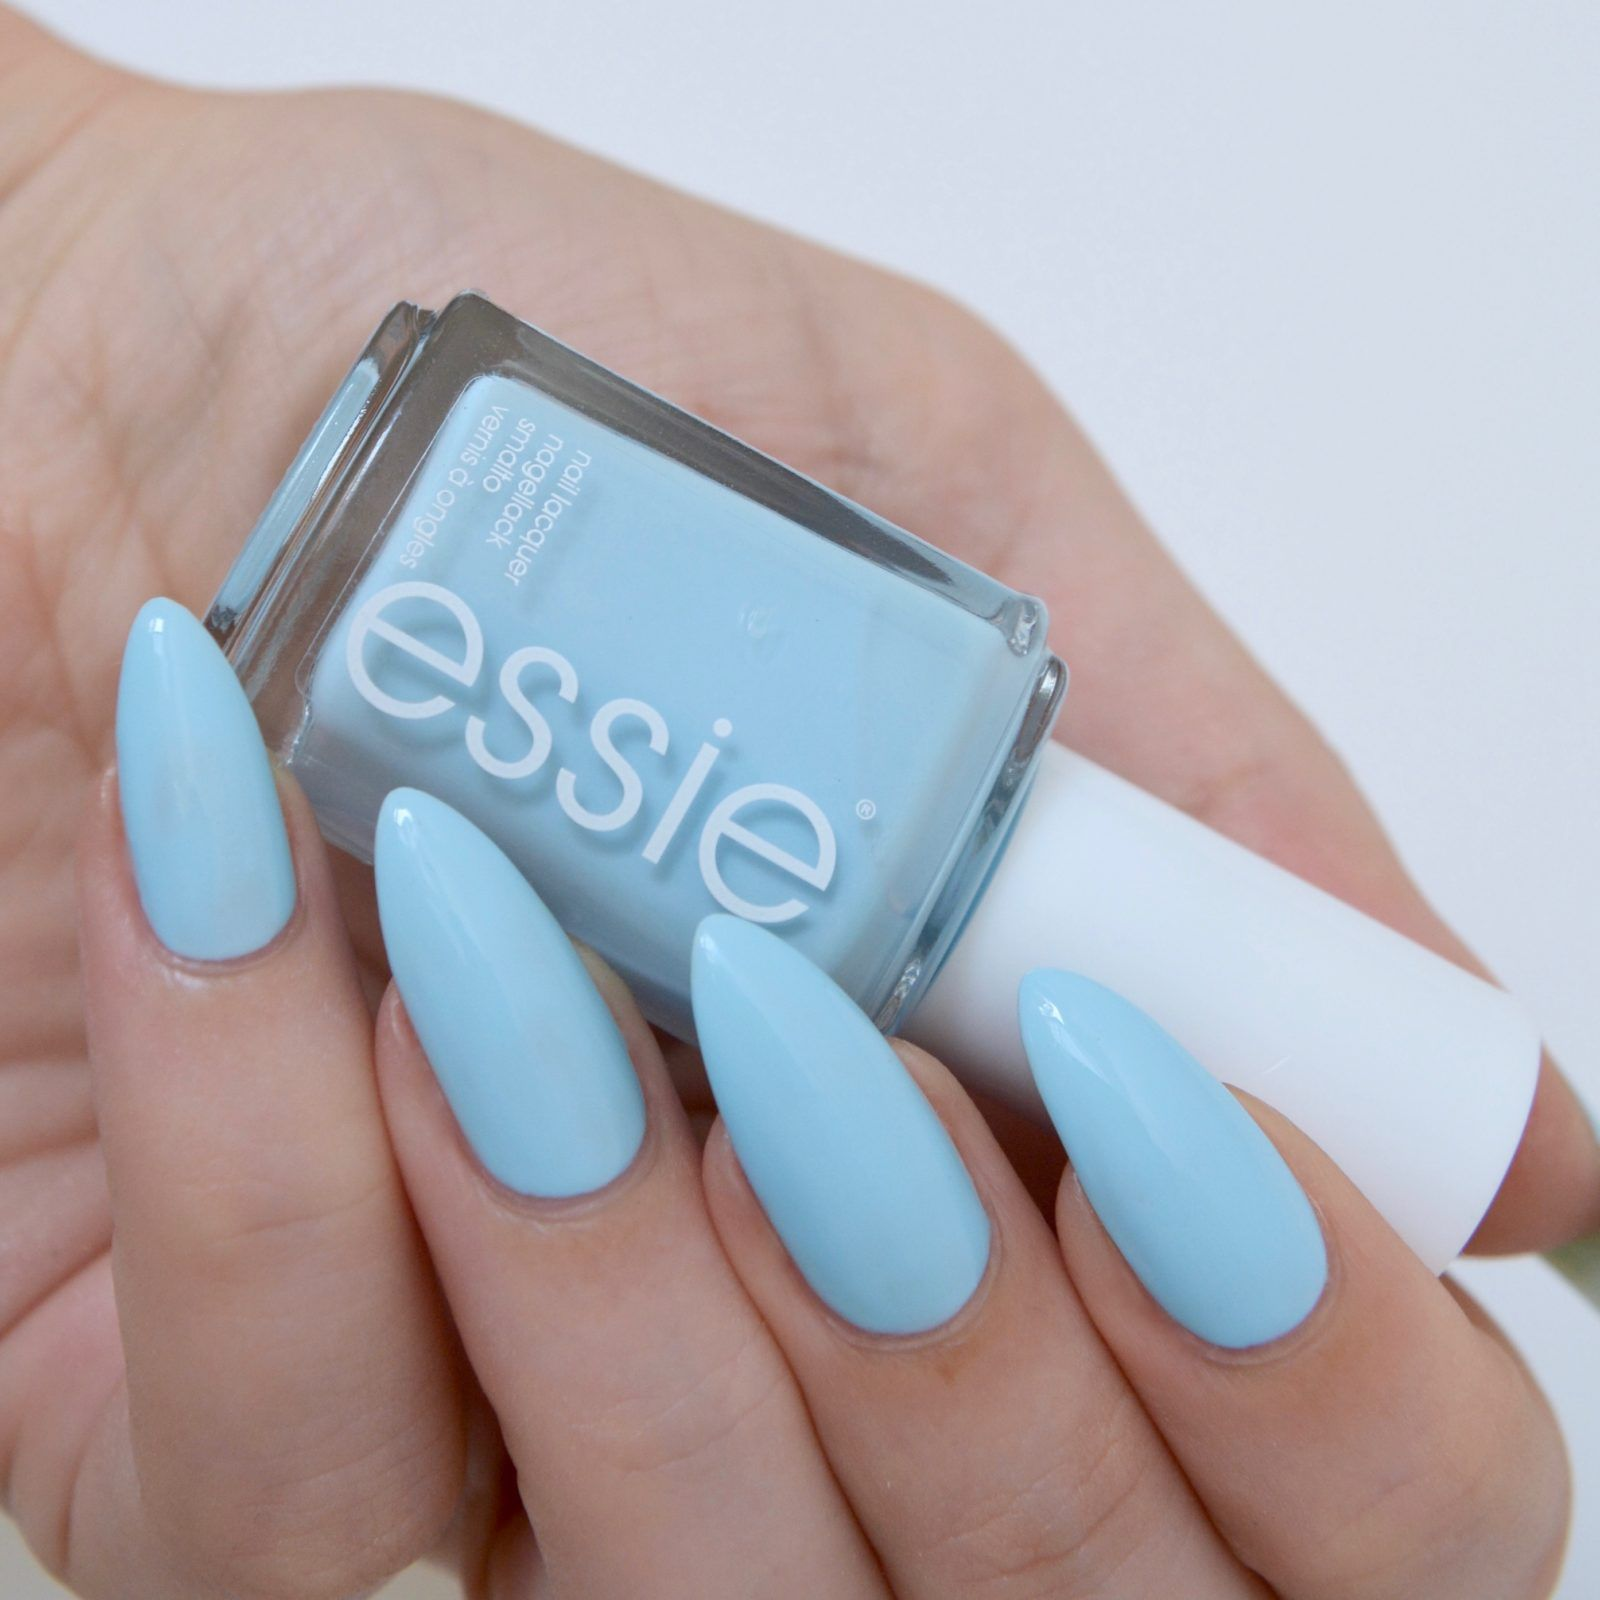 Ooh La La! The Essie Summer 2017 Collection Is Here